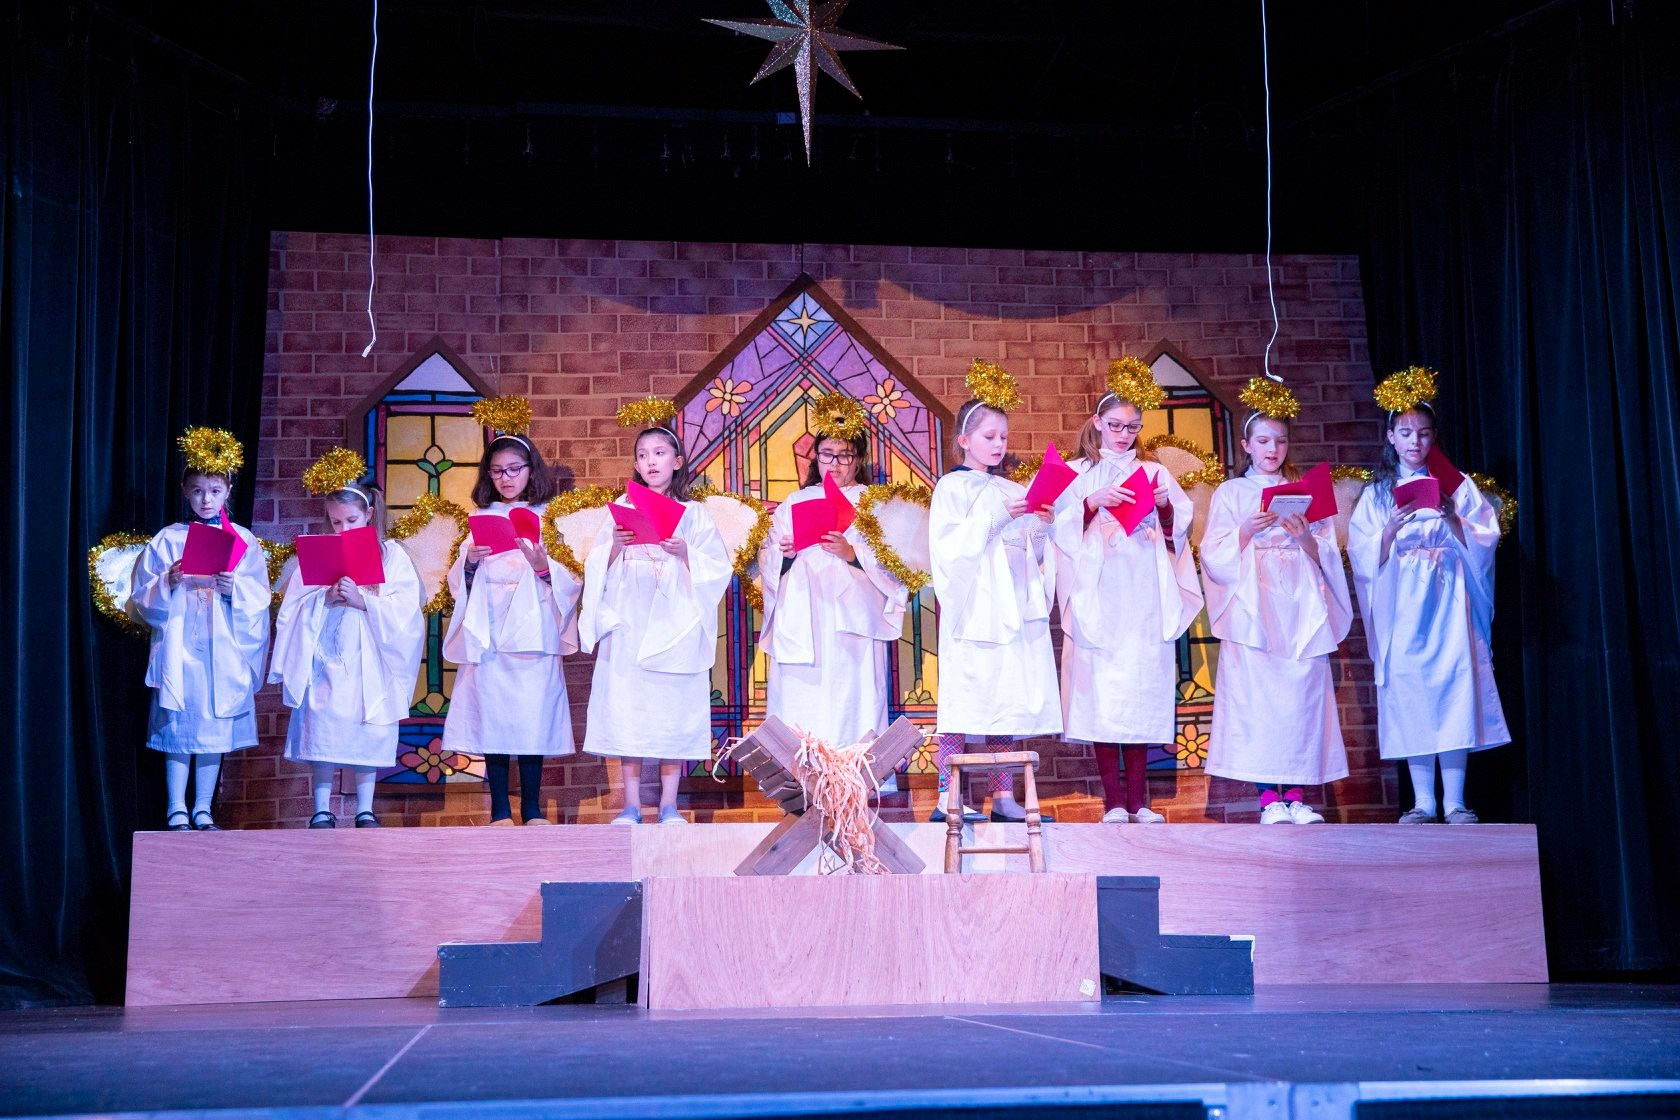 uploads/best-christmas-pageant-ever-lakeway-players-2019/pageant_lakeway_11.jpg